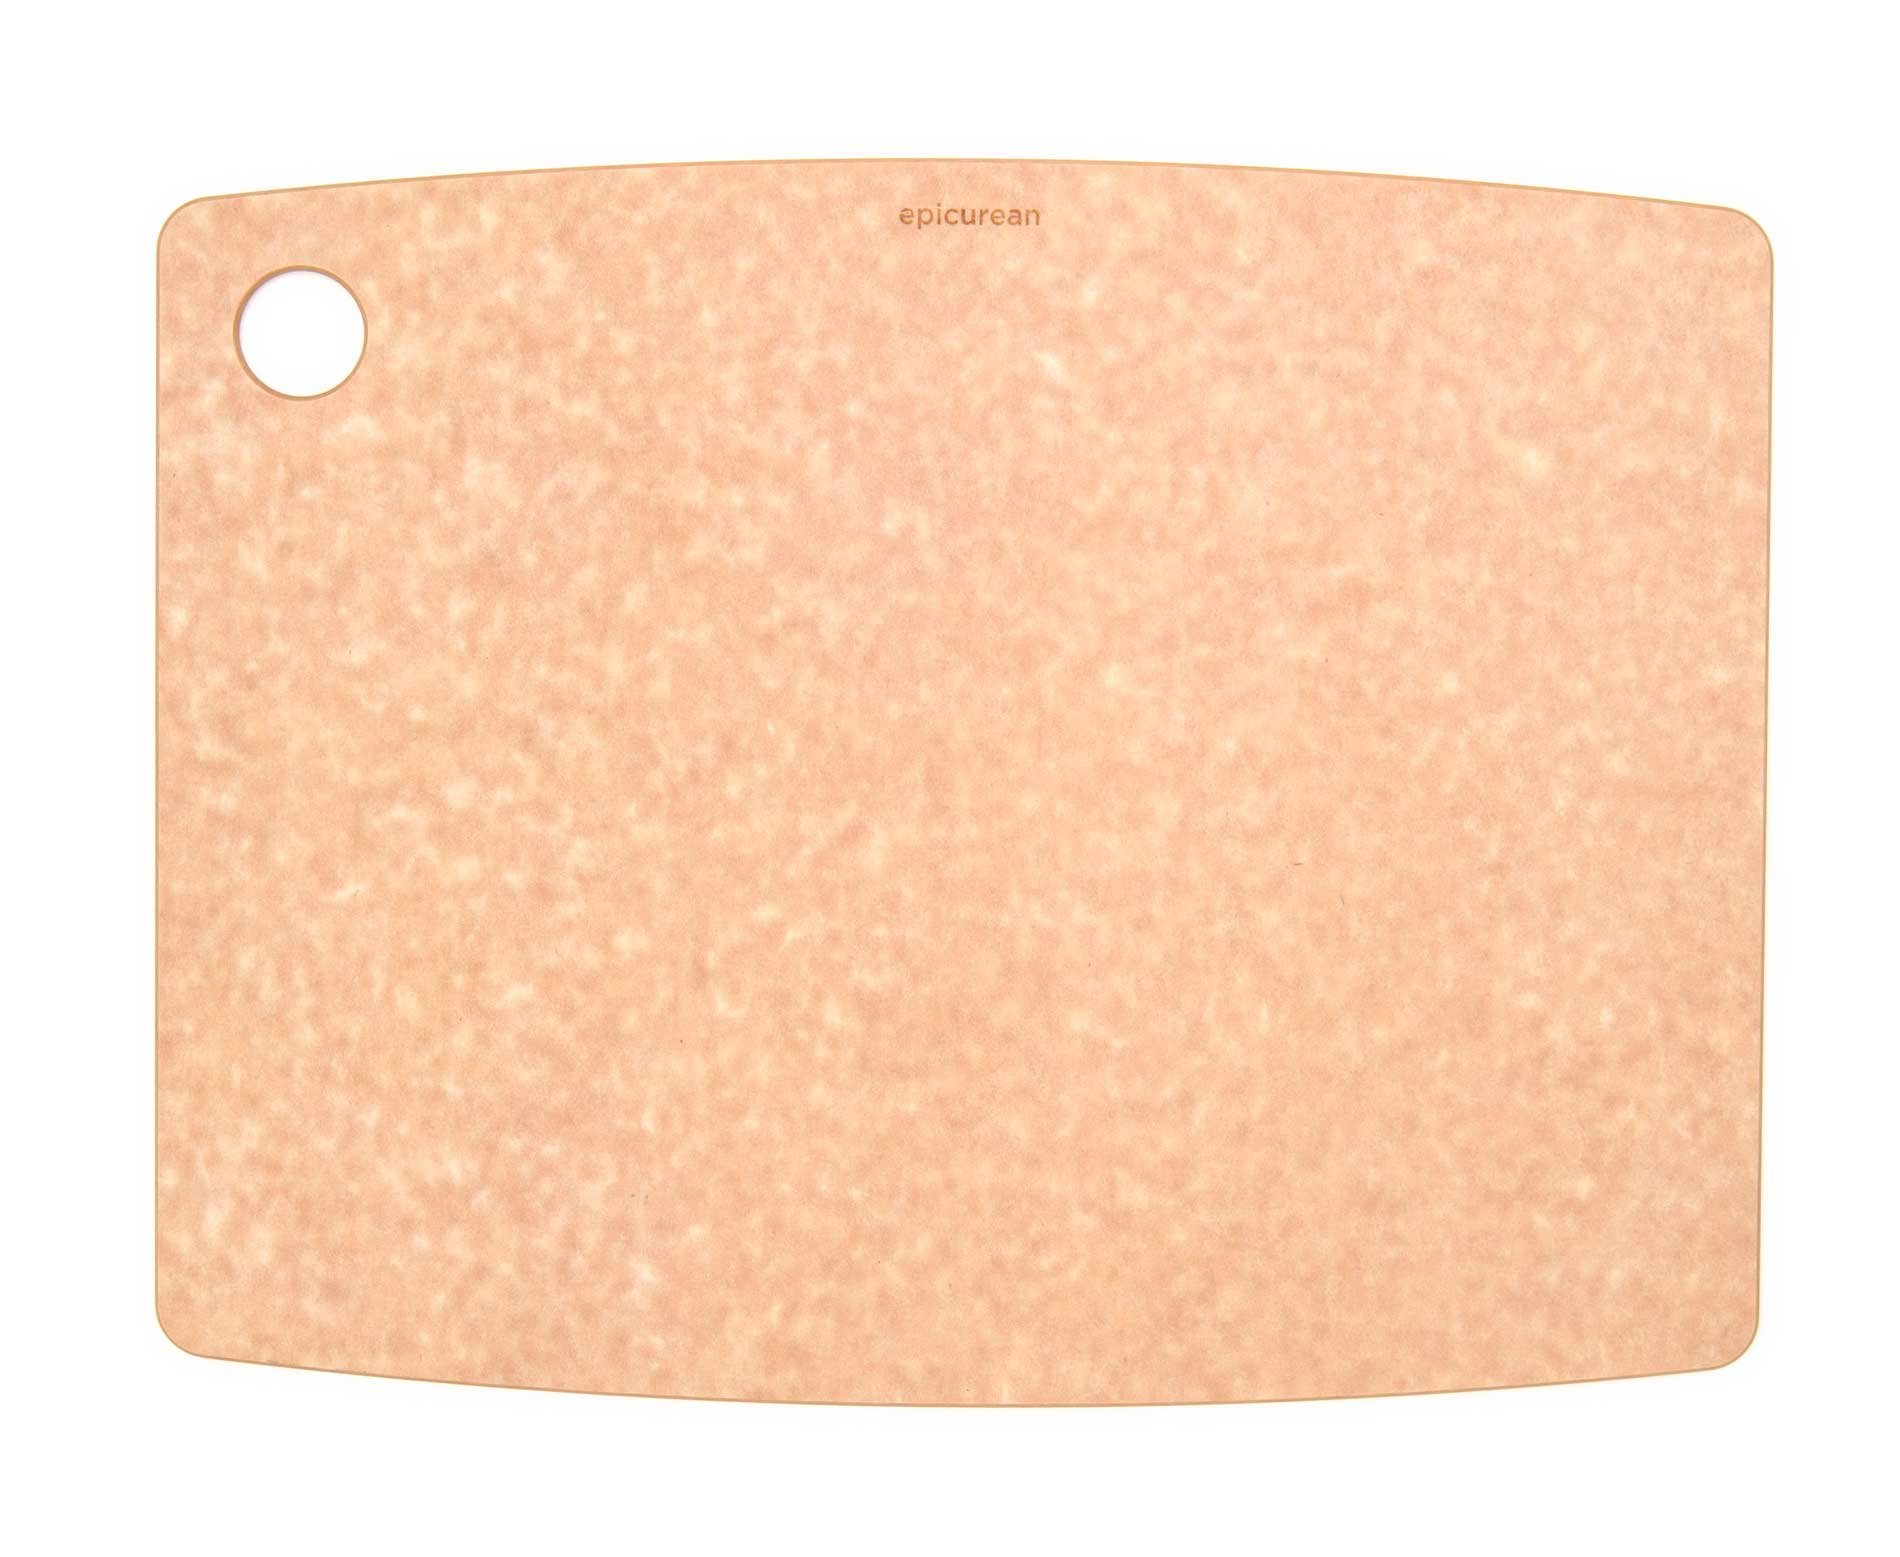 Epicurean 001-151101 Kitchen Series Cutting Board, 14.5 by 11.25-Inch, Natural, Inch Inch by Epicurean